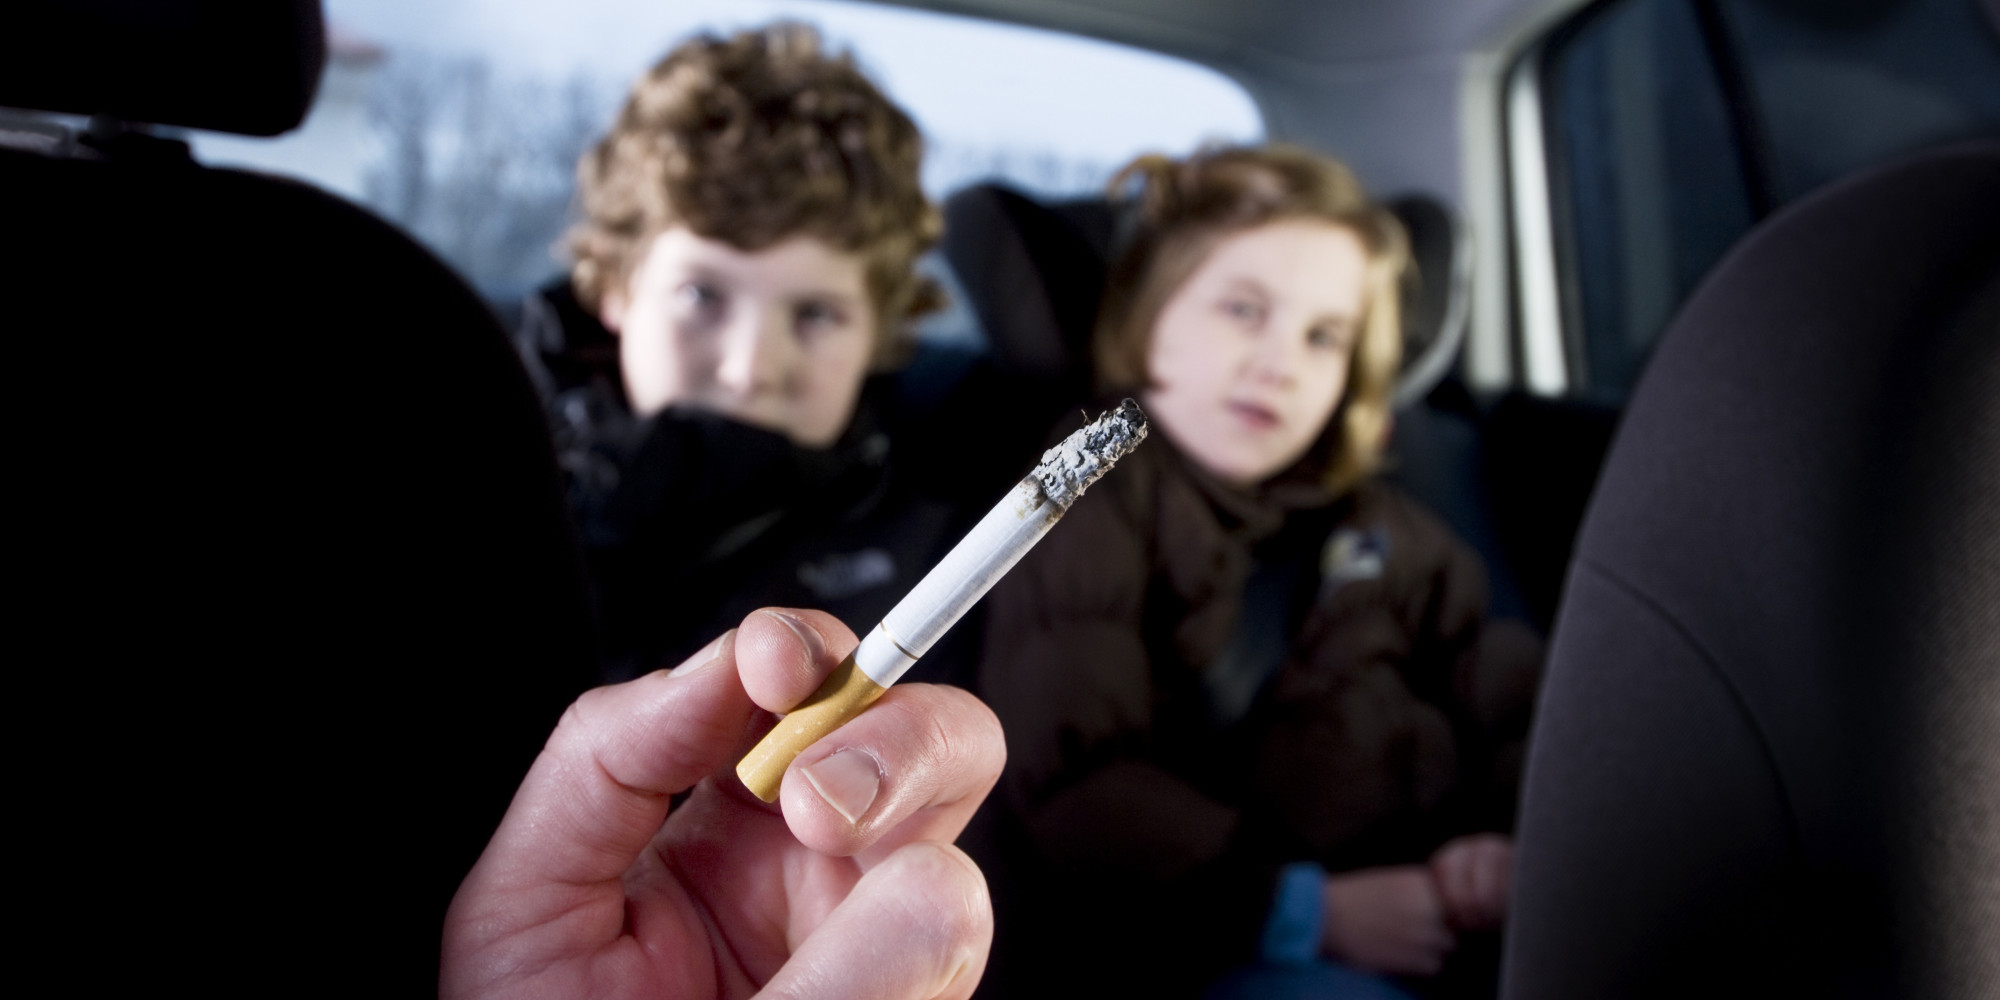 Police to ignore New Smoking in Vehicles Law